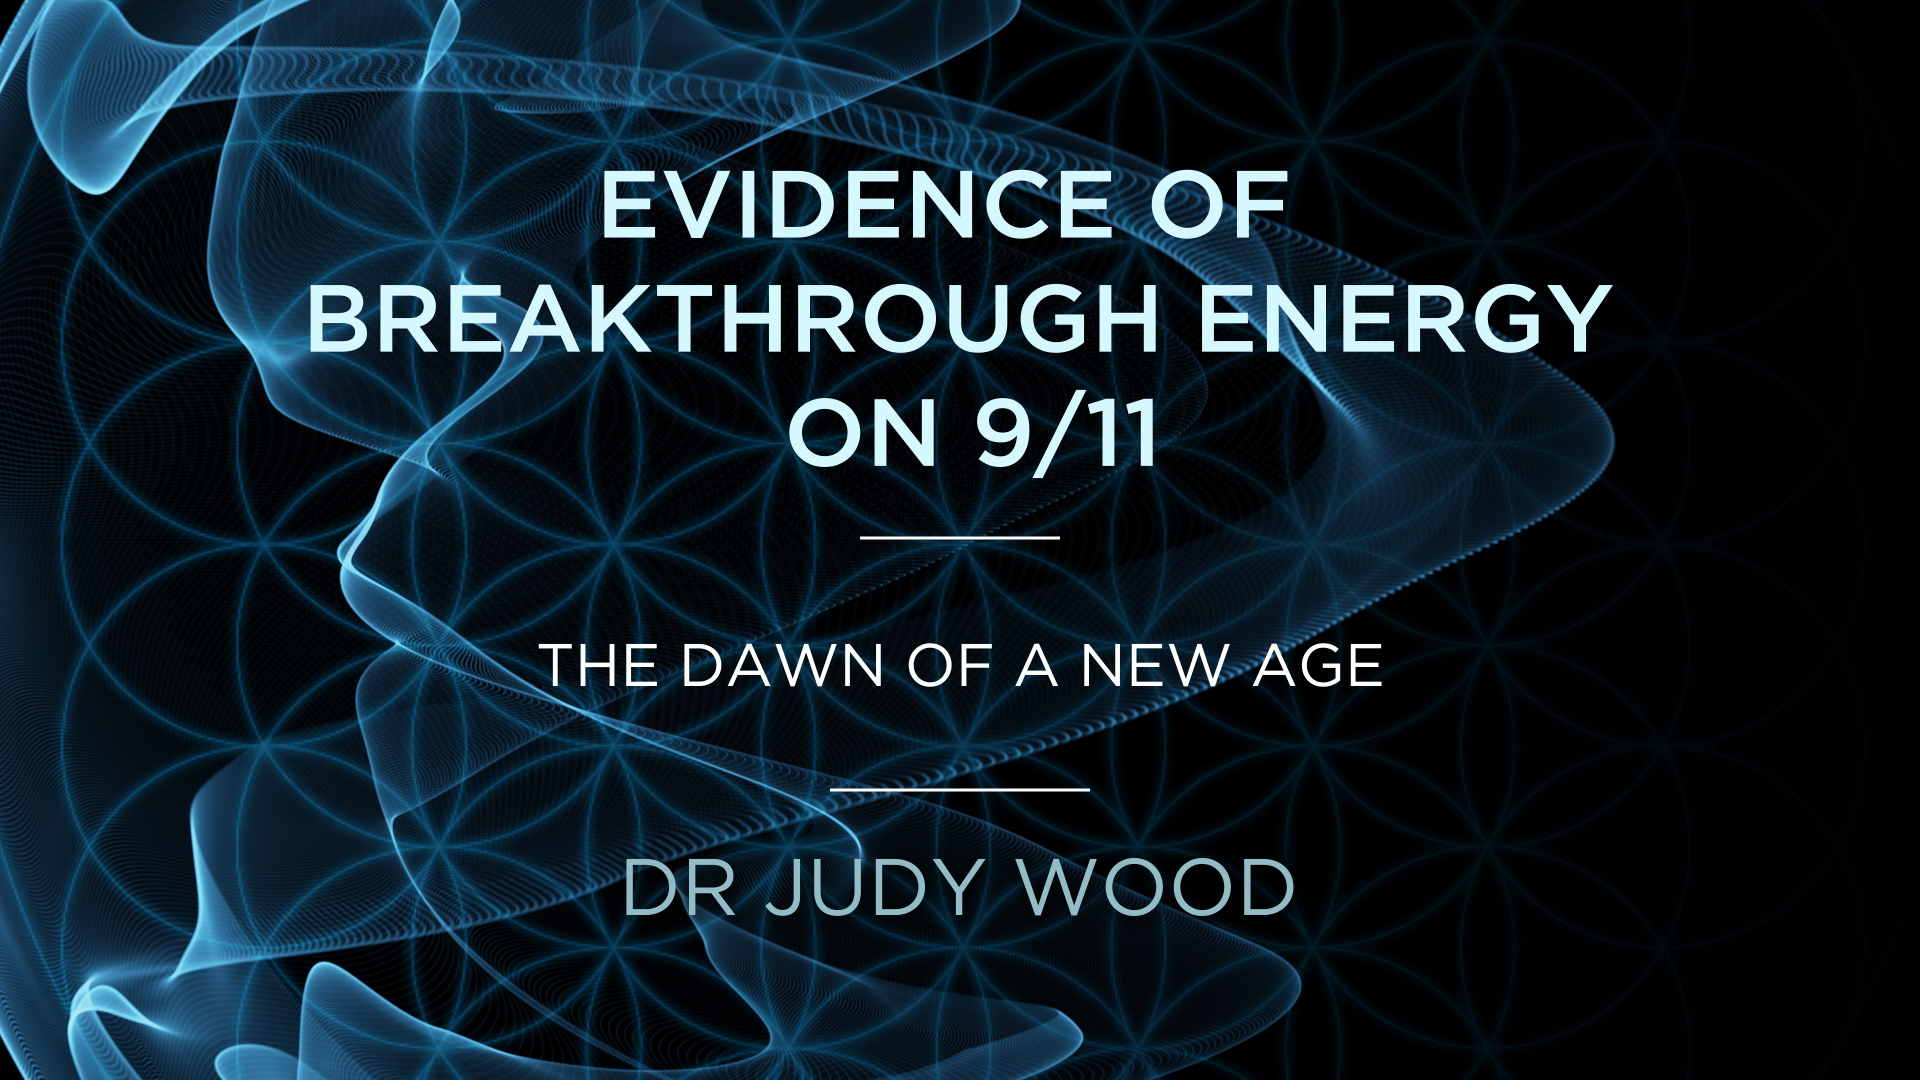 Dr Judy Wood – Evidence of Breakthrough Energy on 9/11